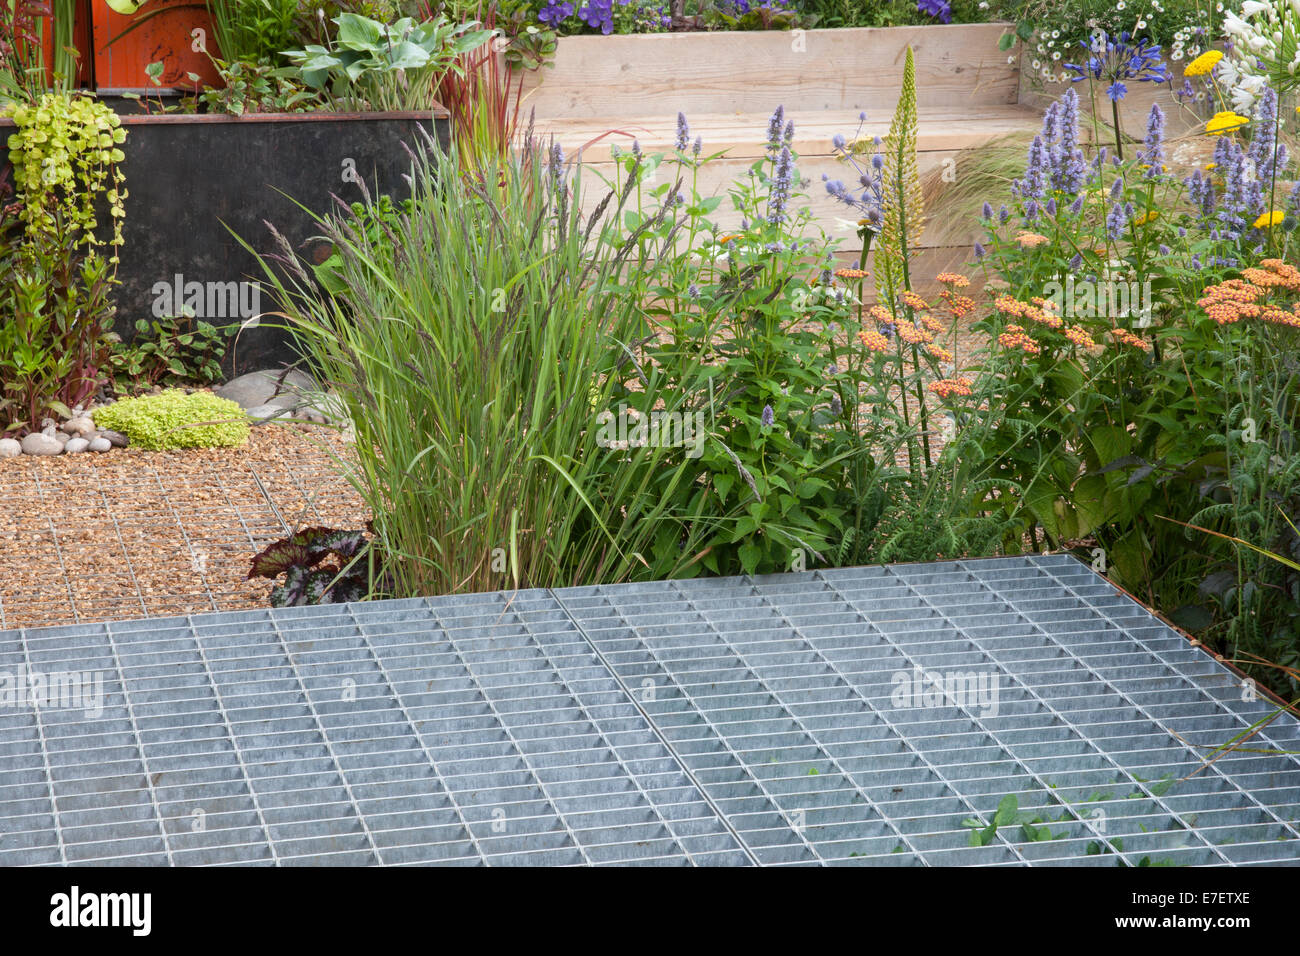 Garden - Space to Connect and Grow - view of garden made from industrial reclaimed and reused materials  raised - Stock Image